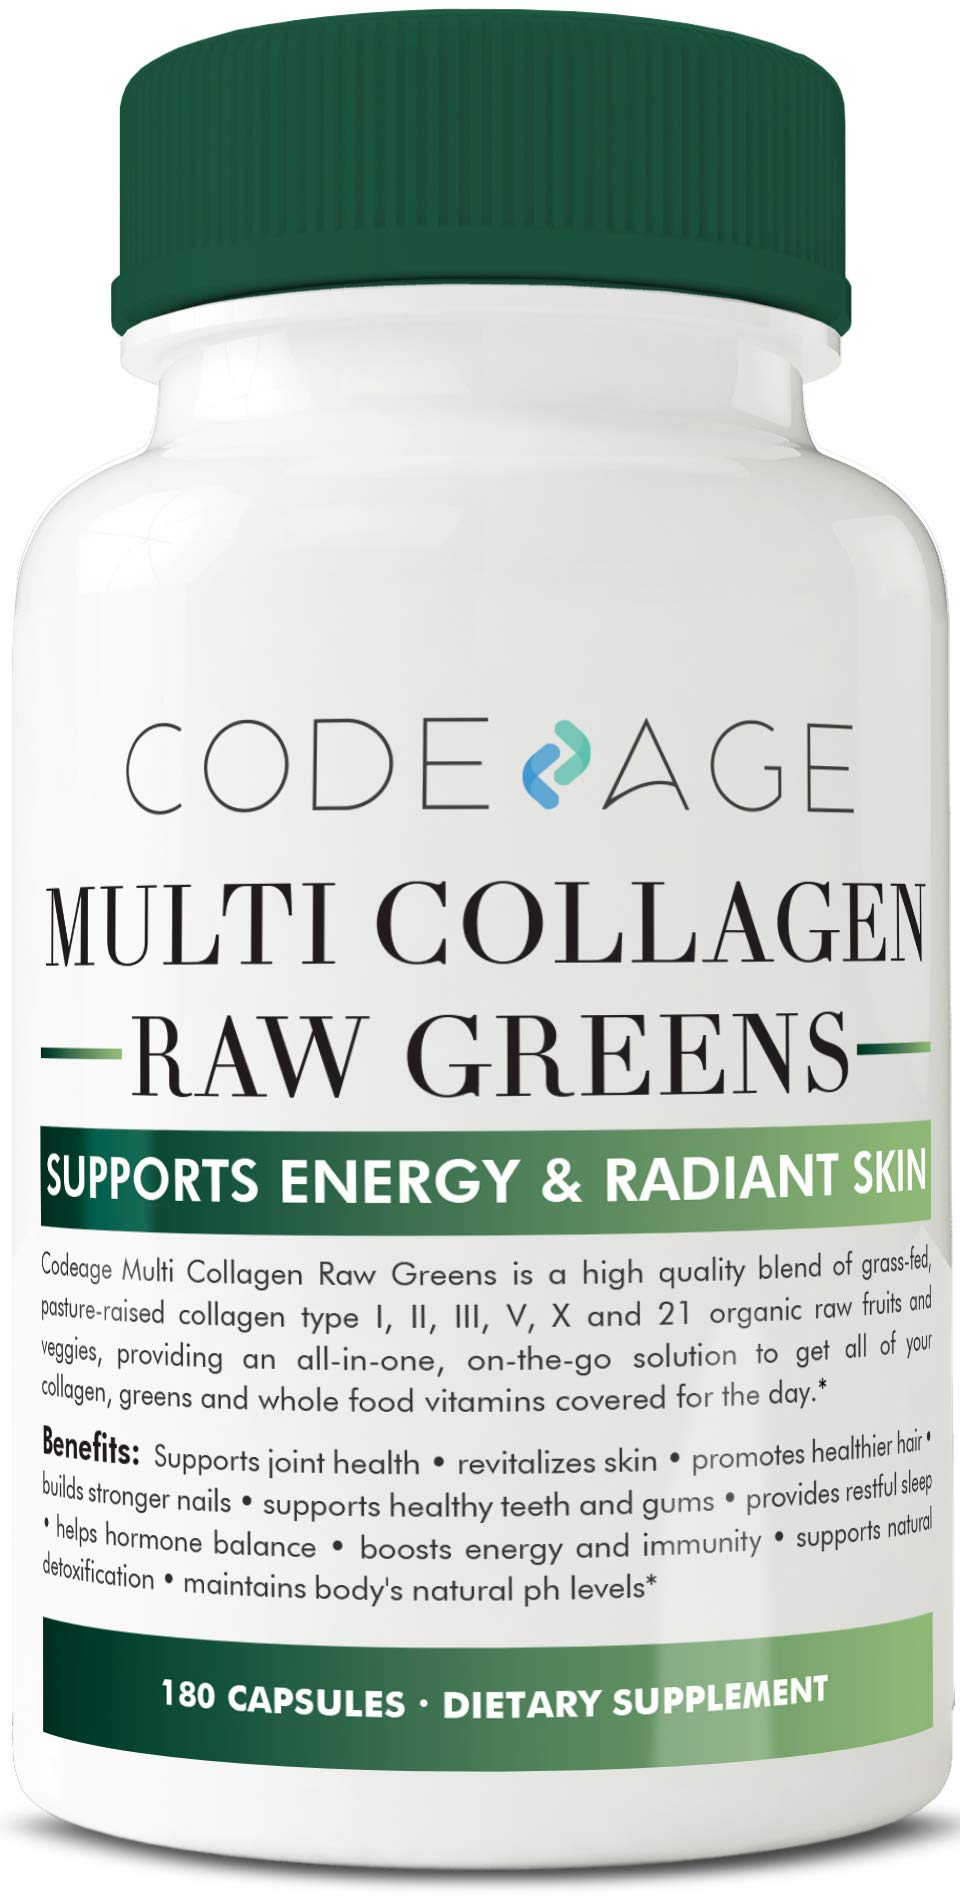 Codeage Multi Collagen Pills and Raw Greens Superfood, Grass Fed Collagen Type I, II, III, V, X and 21 Organic Nutritions, 180 Capsules by Codeage